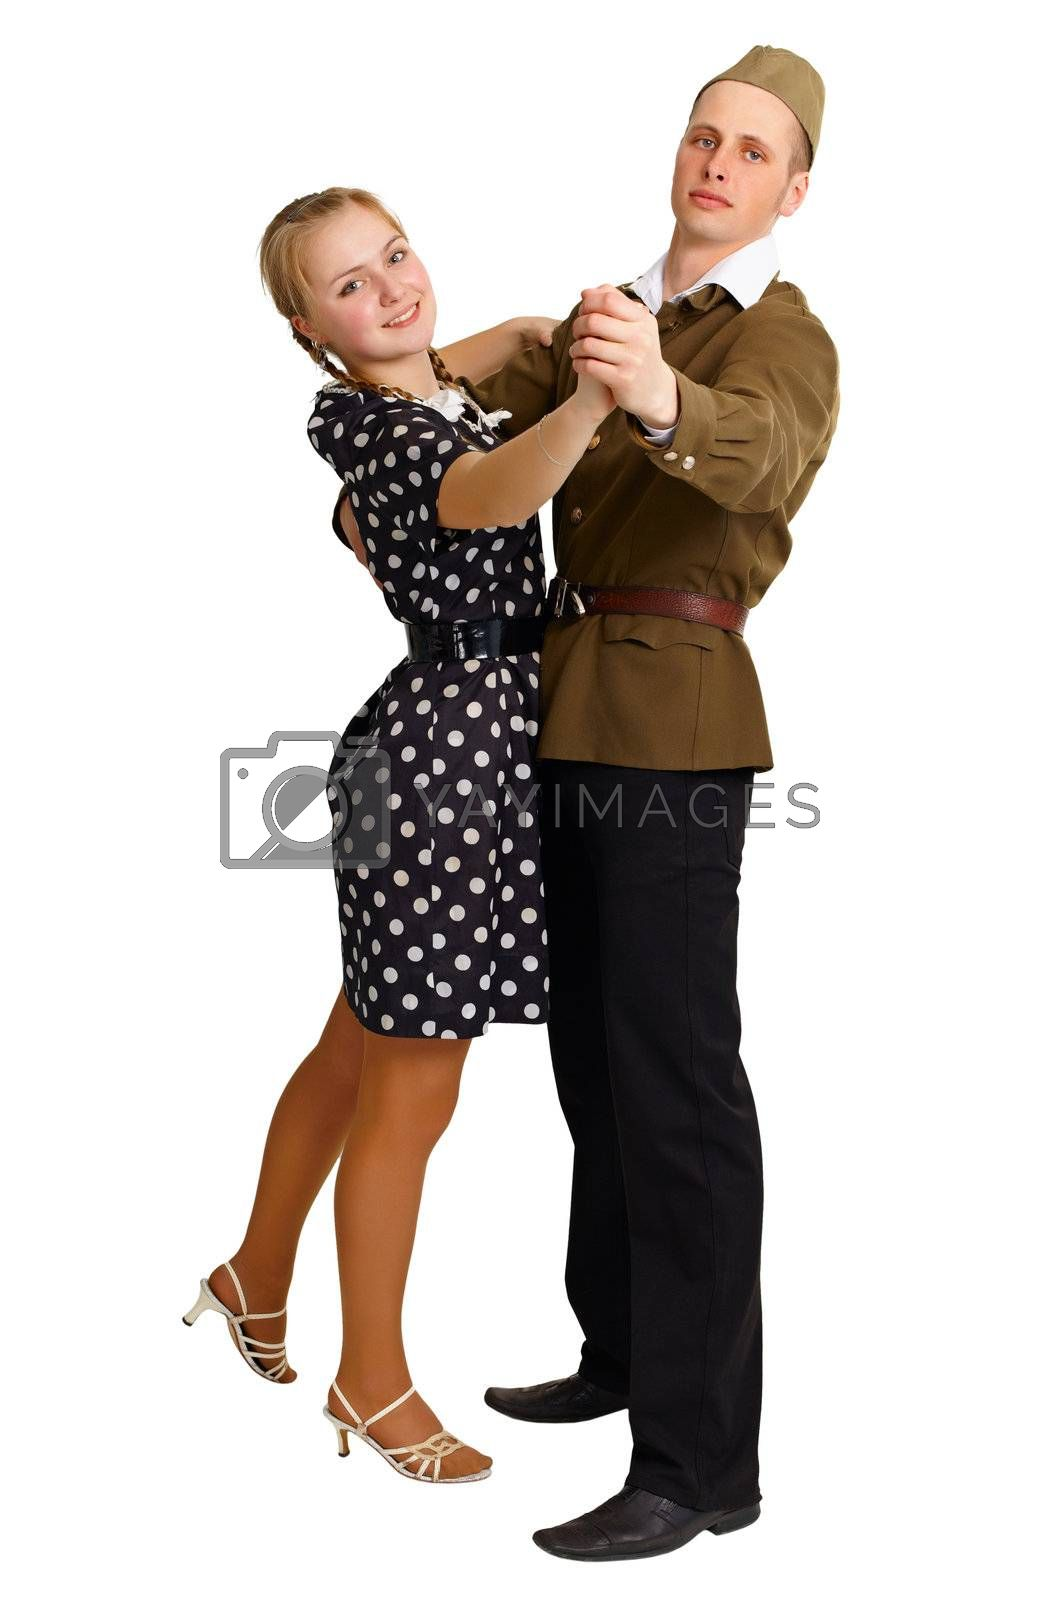 A pair in clothes 40th years dancing isolated on white background